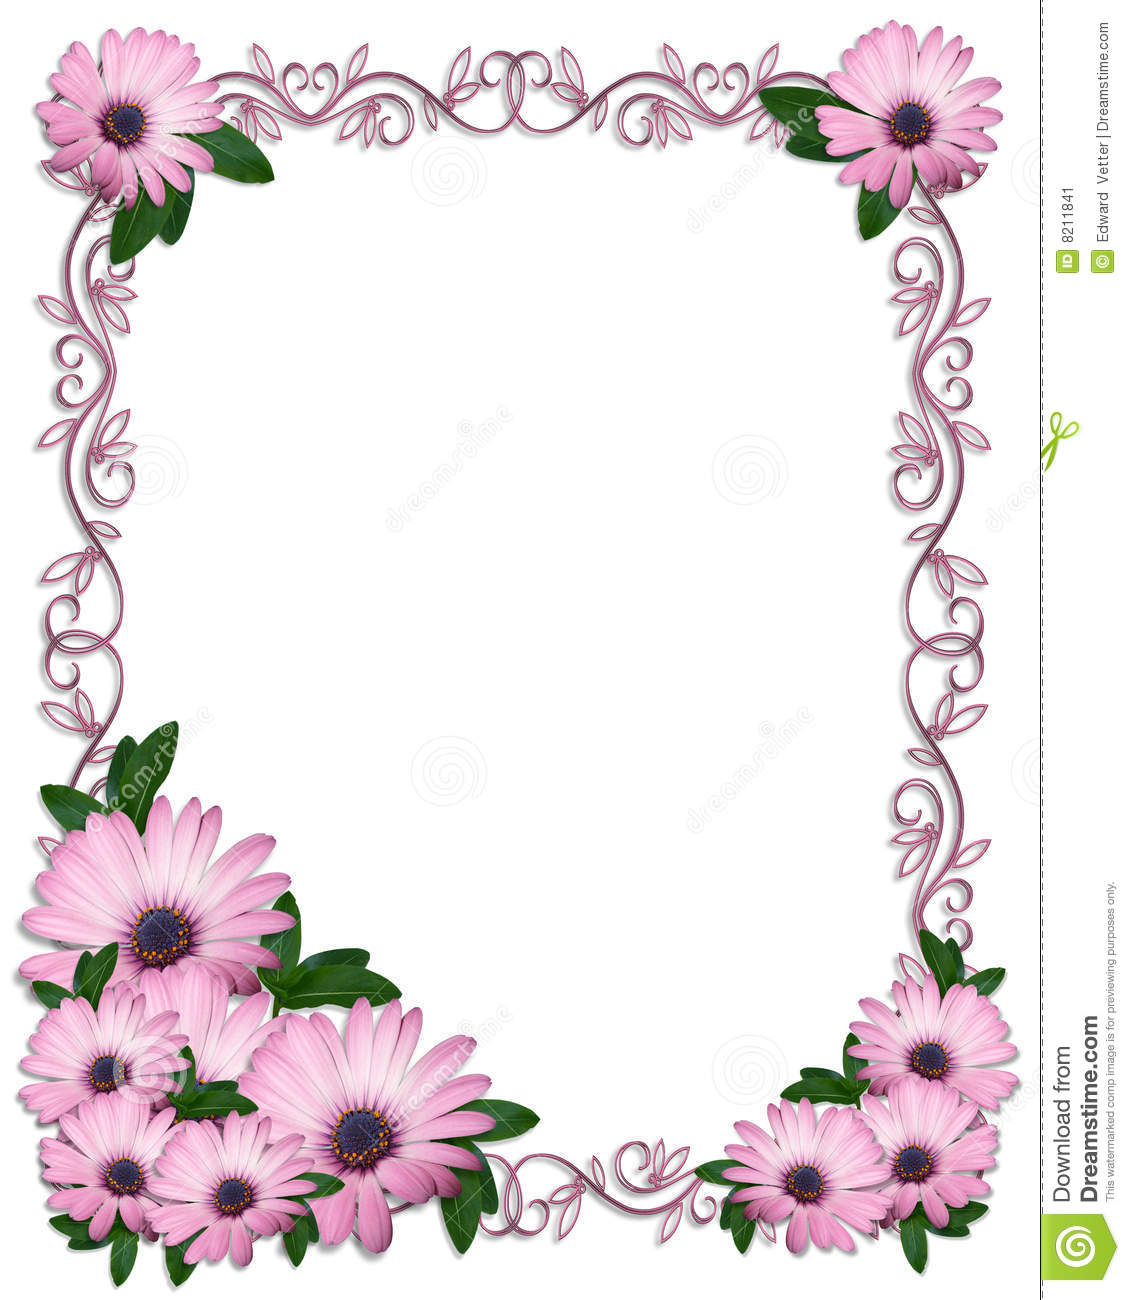 Flower Page Borders And Frames - Page 5 - Frame Design & Reviews ✓